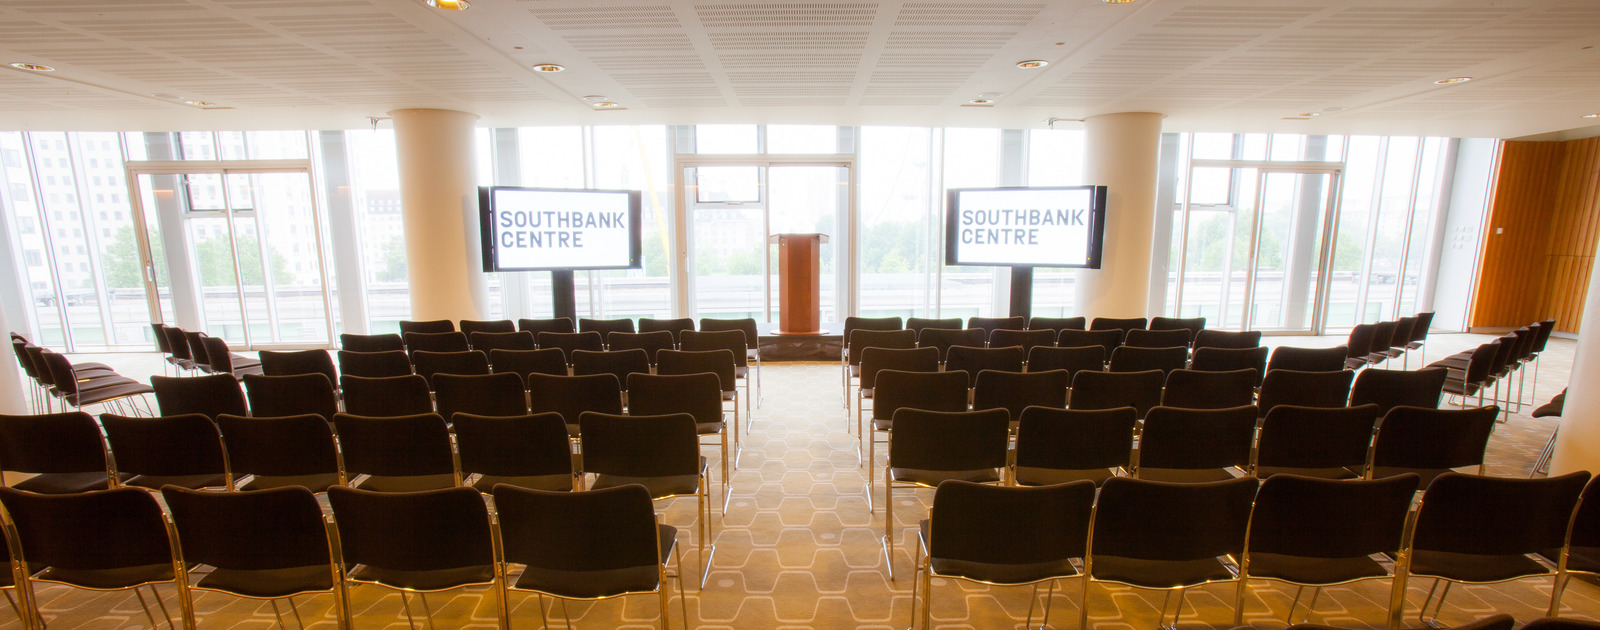 View of the level 5 function room at the Southbank Centre